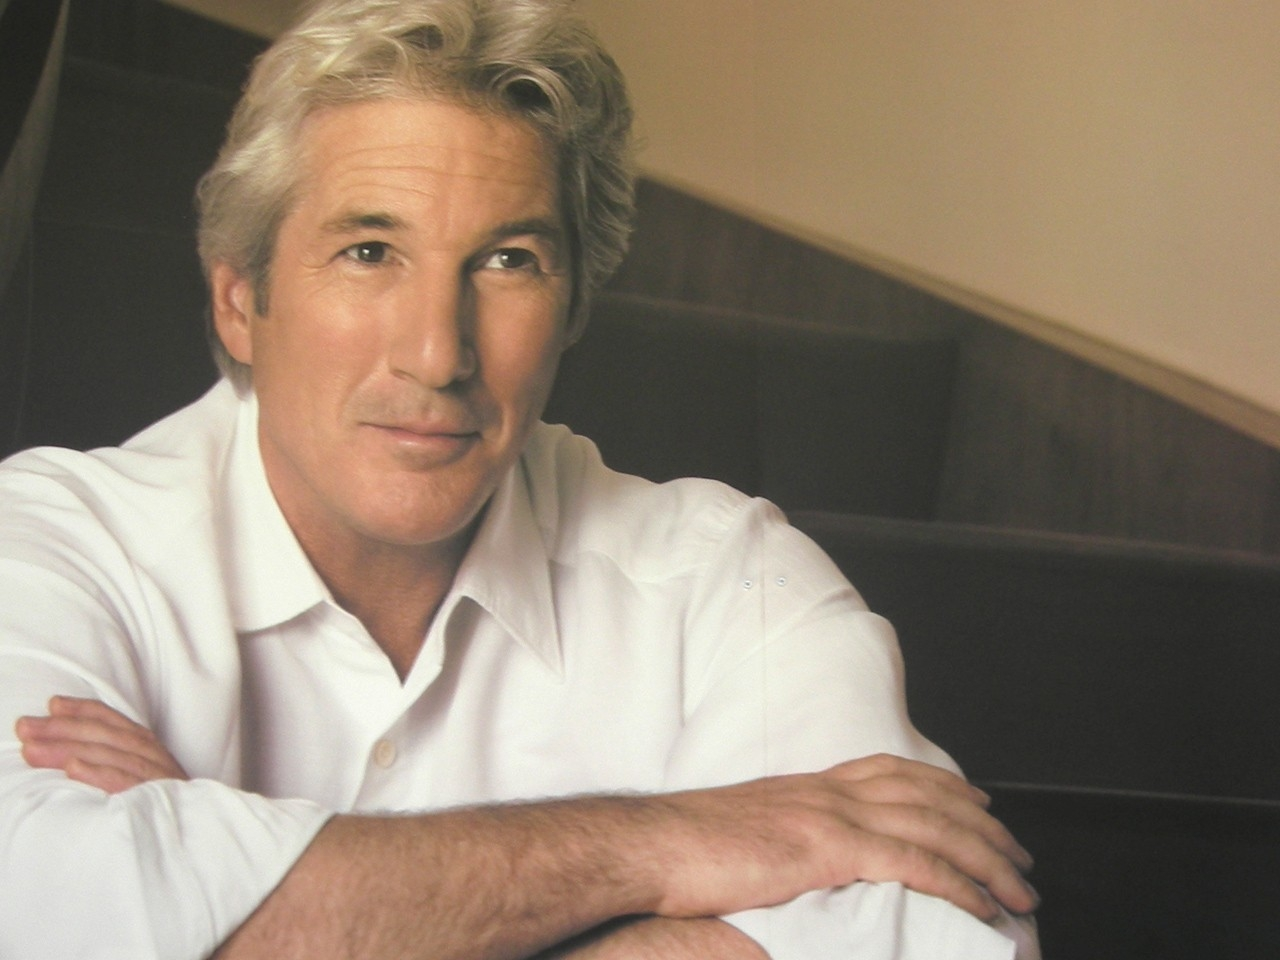 Wallpaper di Richard Gere